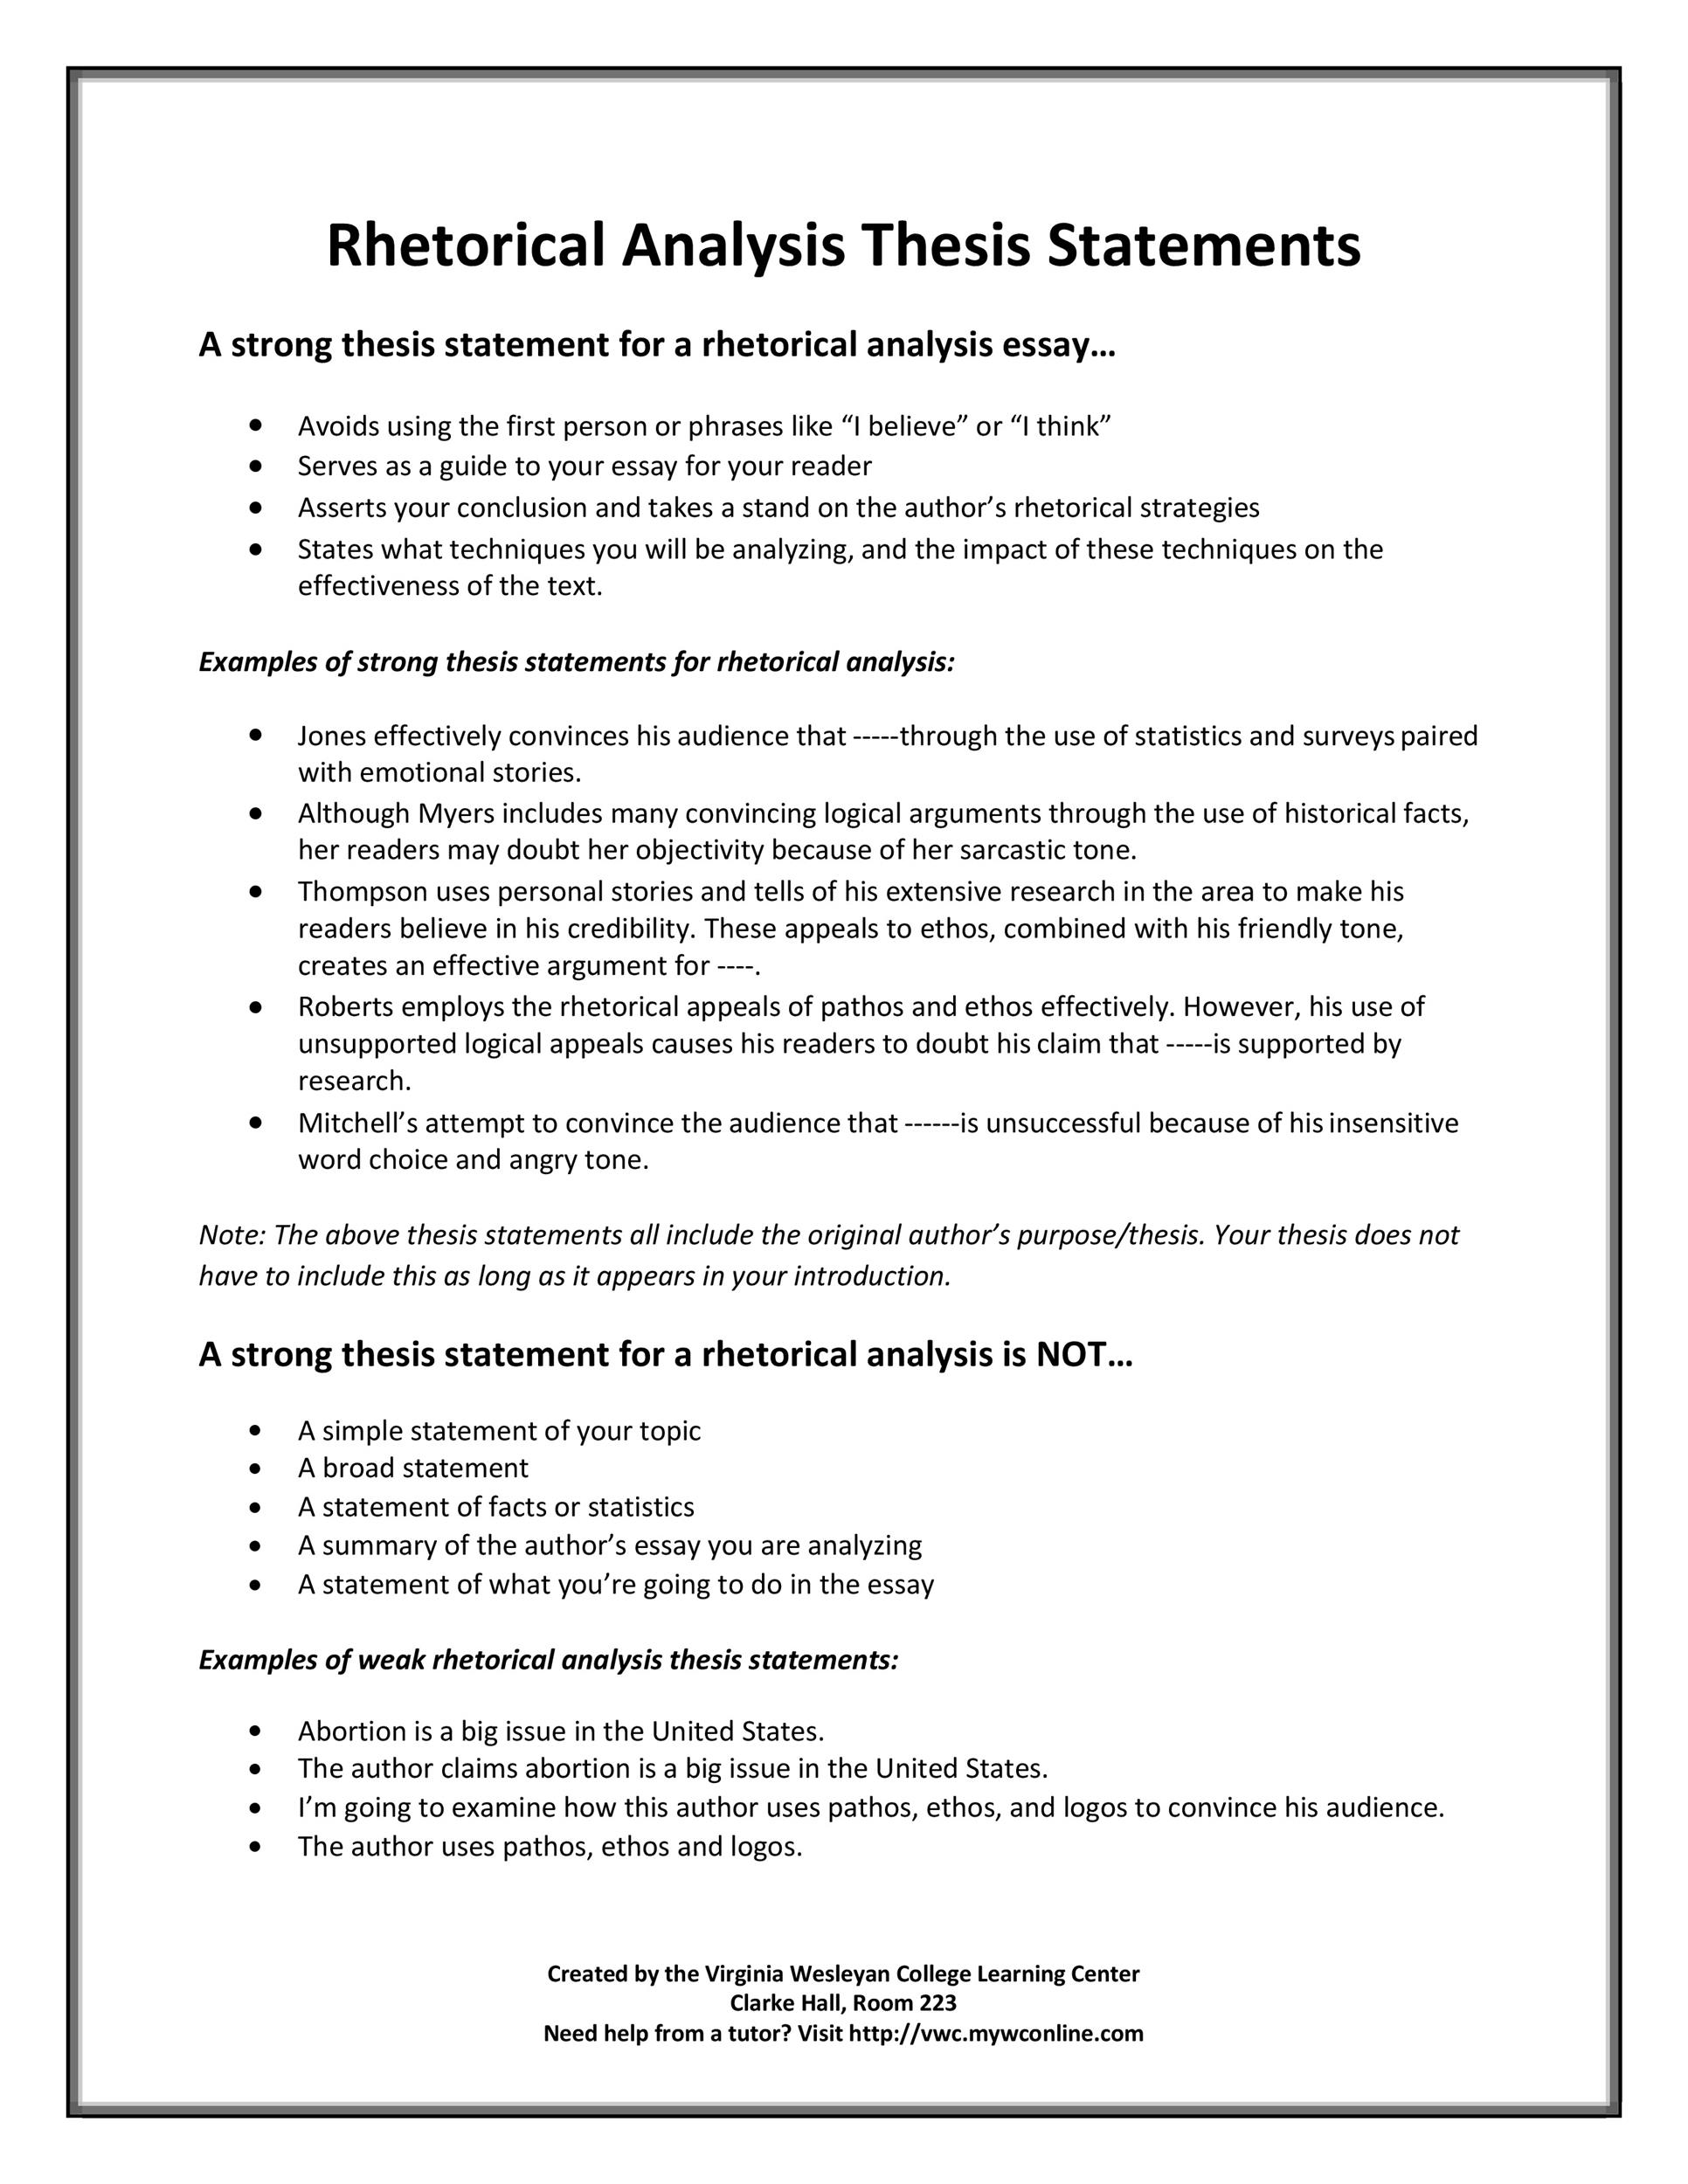 Free thesis statement template 34